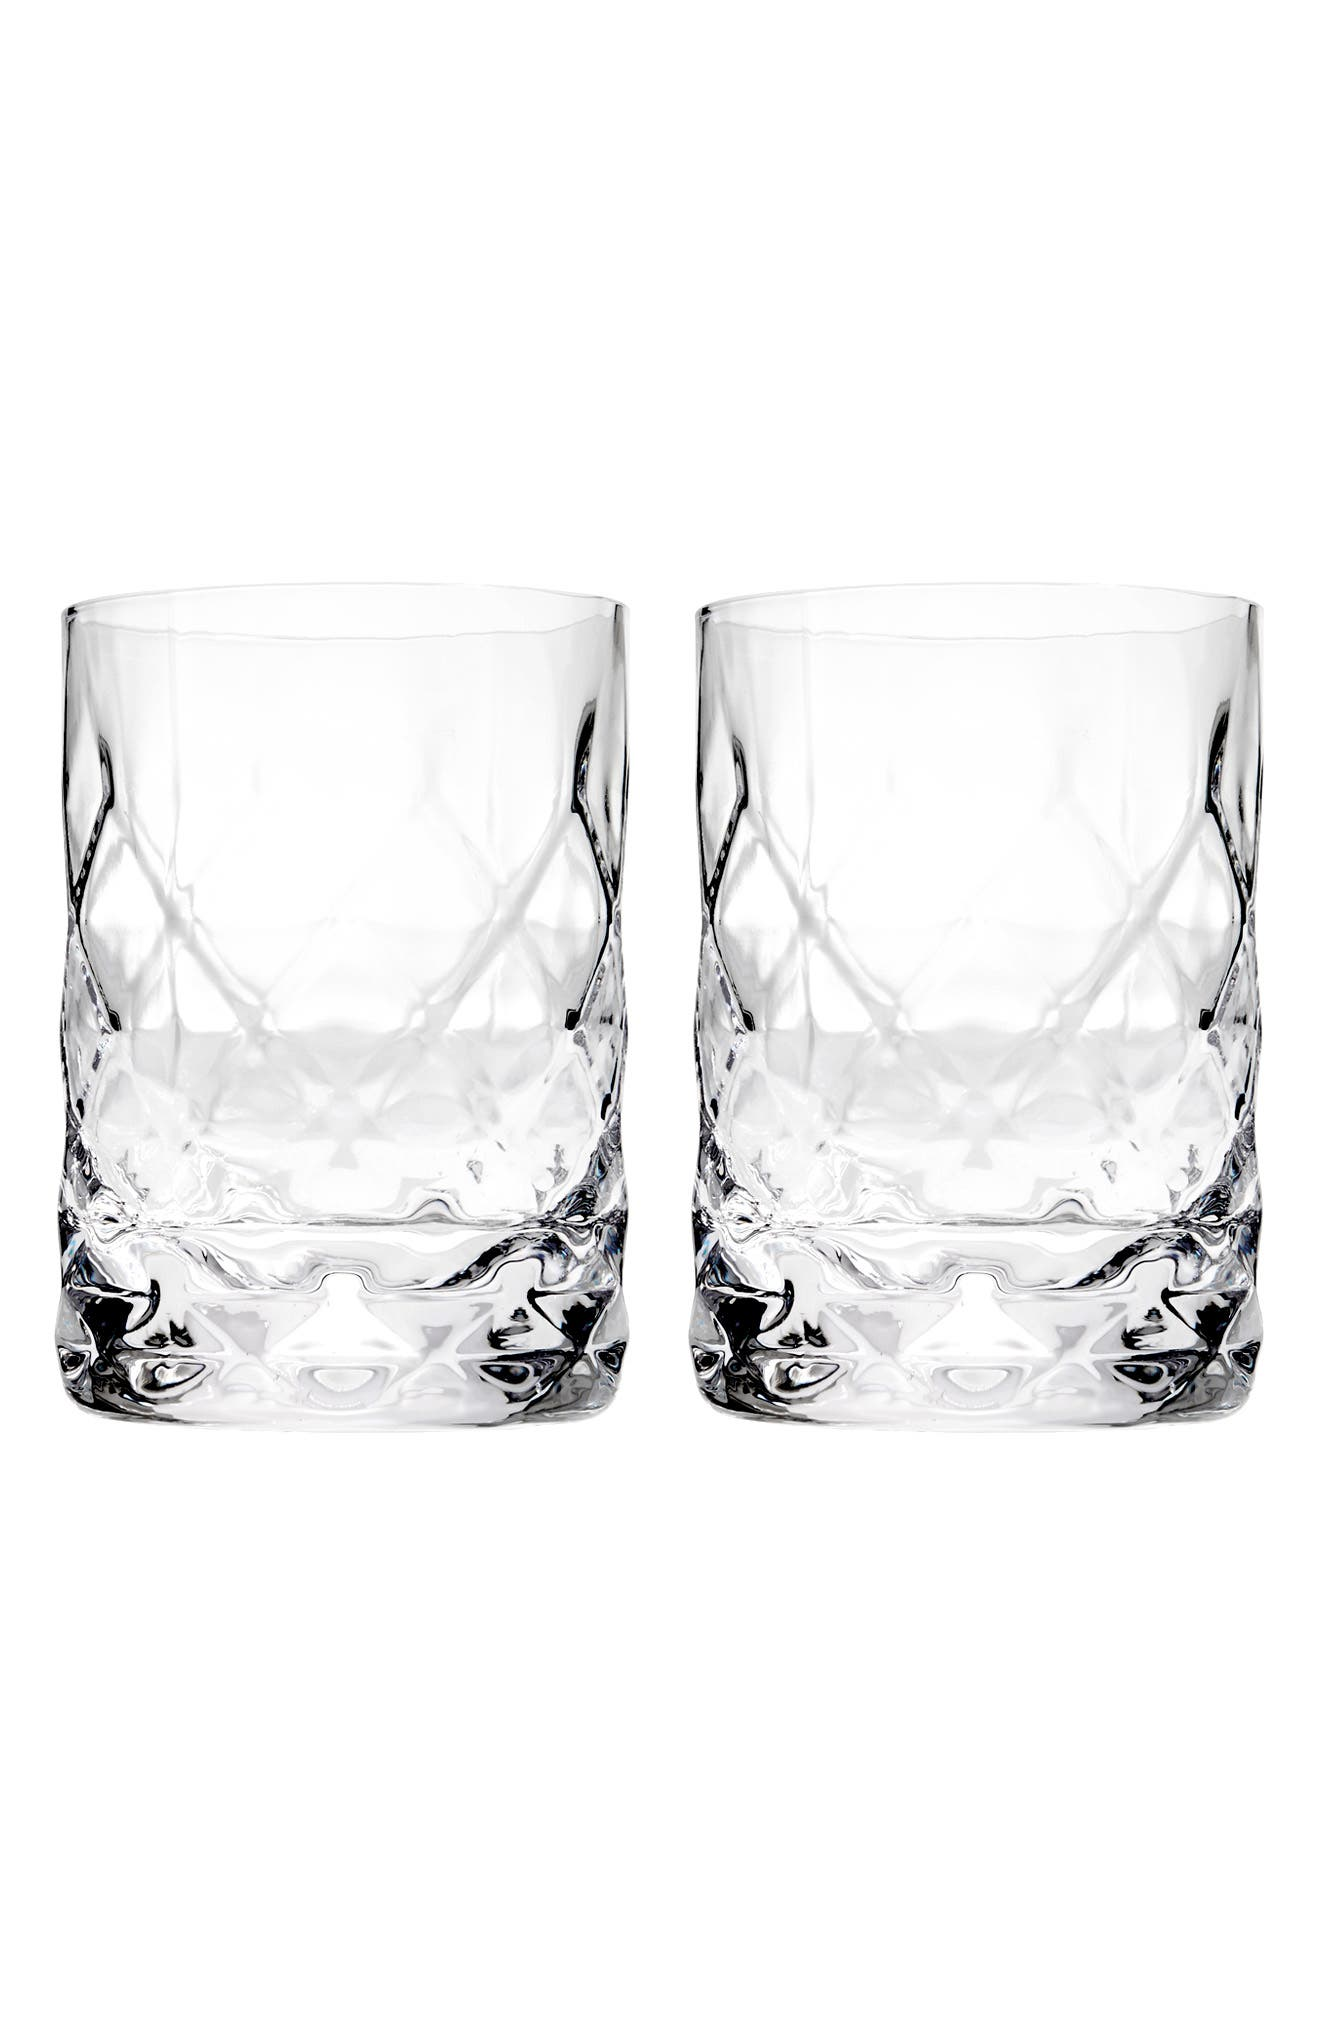 Alternate Image 1 Selected - true fabrications Set of 2 Double Old Fashioned Glasses